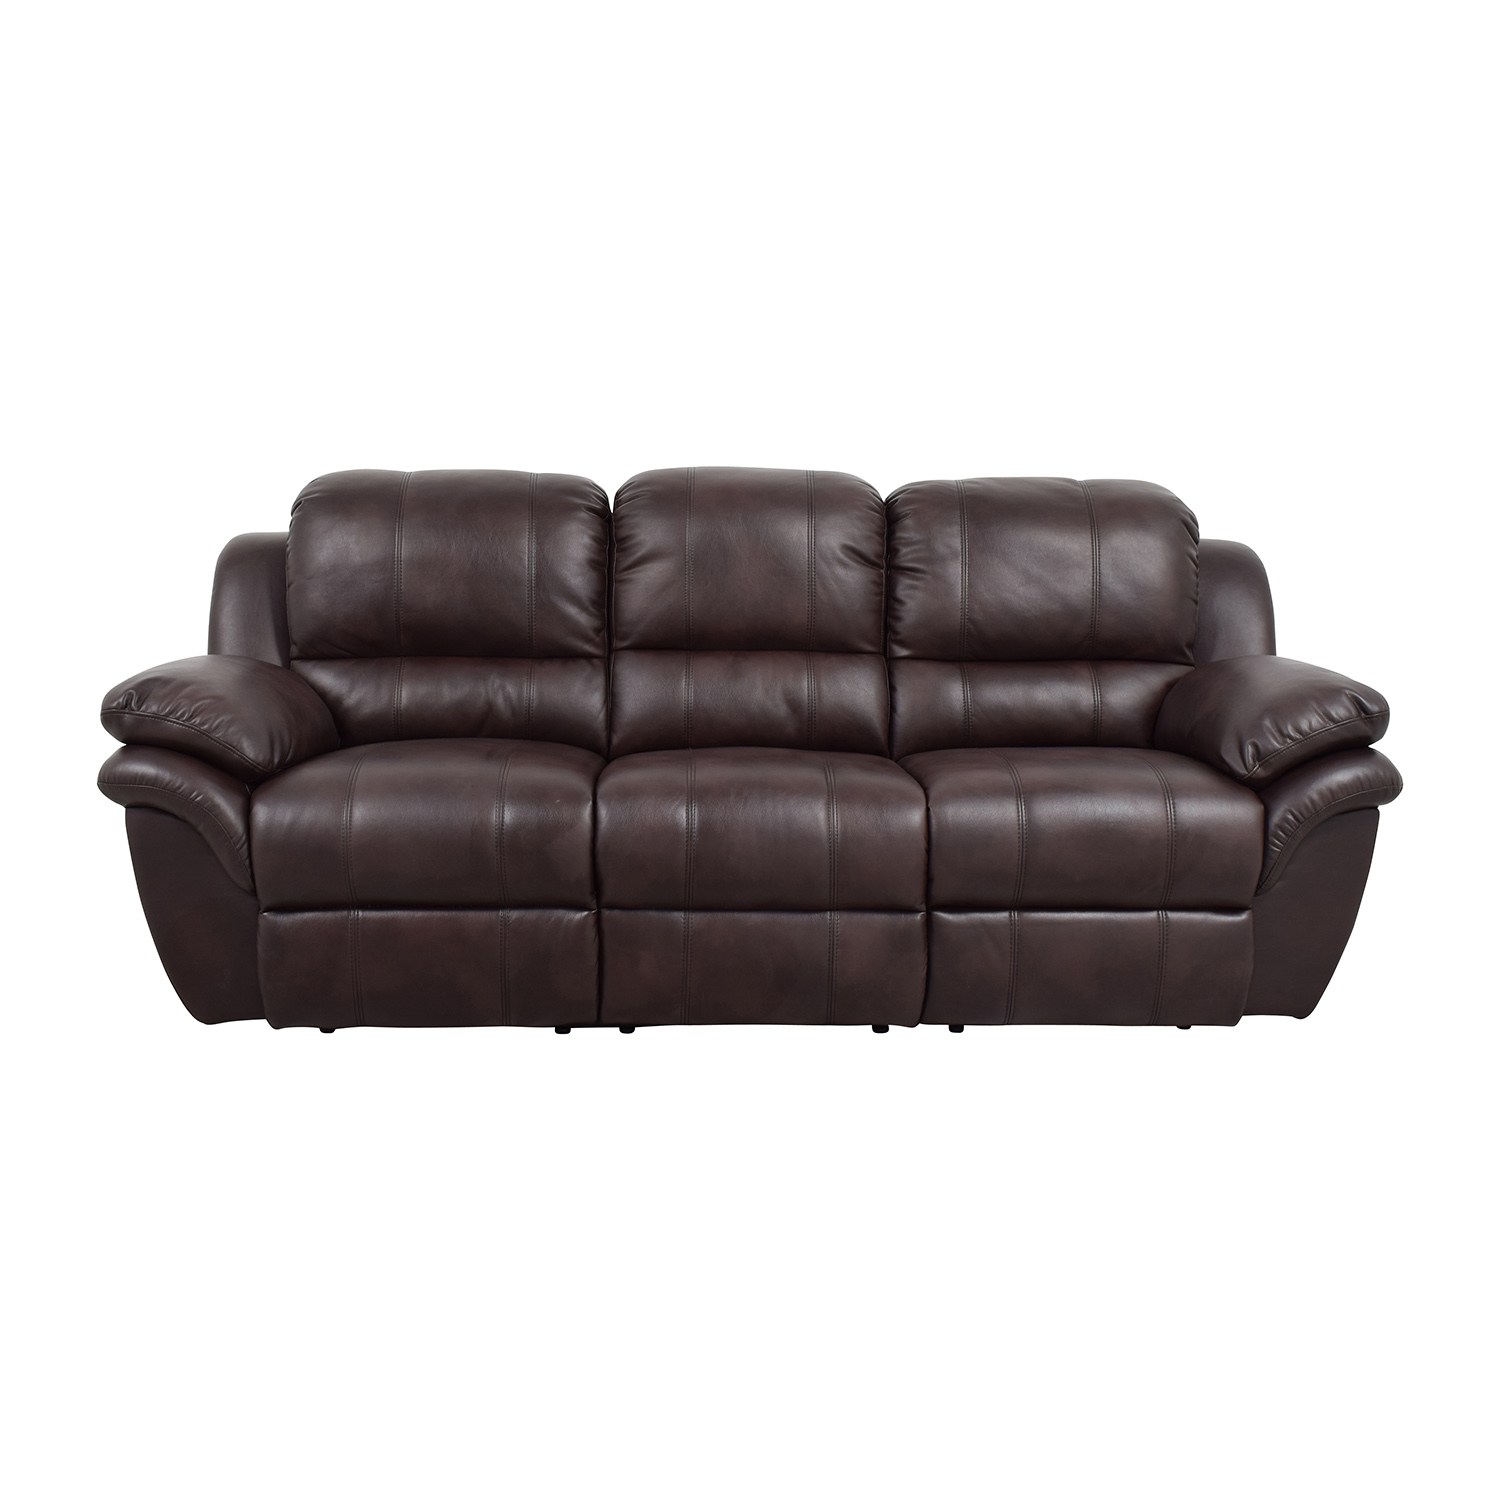 shop New Classic Home Furnishing New Classic Home Furnishing Leather Reclining Brown Couch online